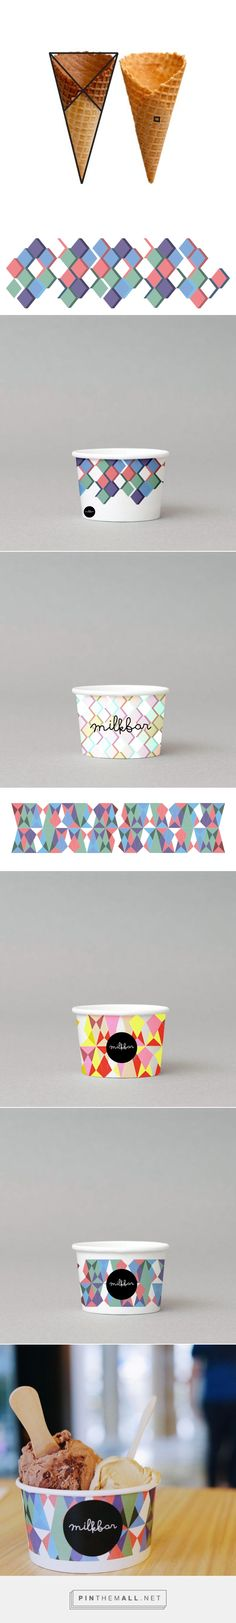 Milkbar Gelato - Packaging on Behance by Christopher Widjaja curated by Packaging Diva PD. Ice-cream cup design for Indonesian-based artisan gelato shop, The Milkbar.